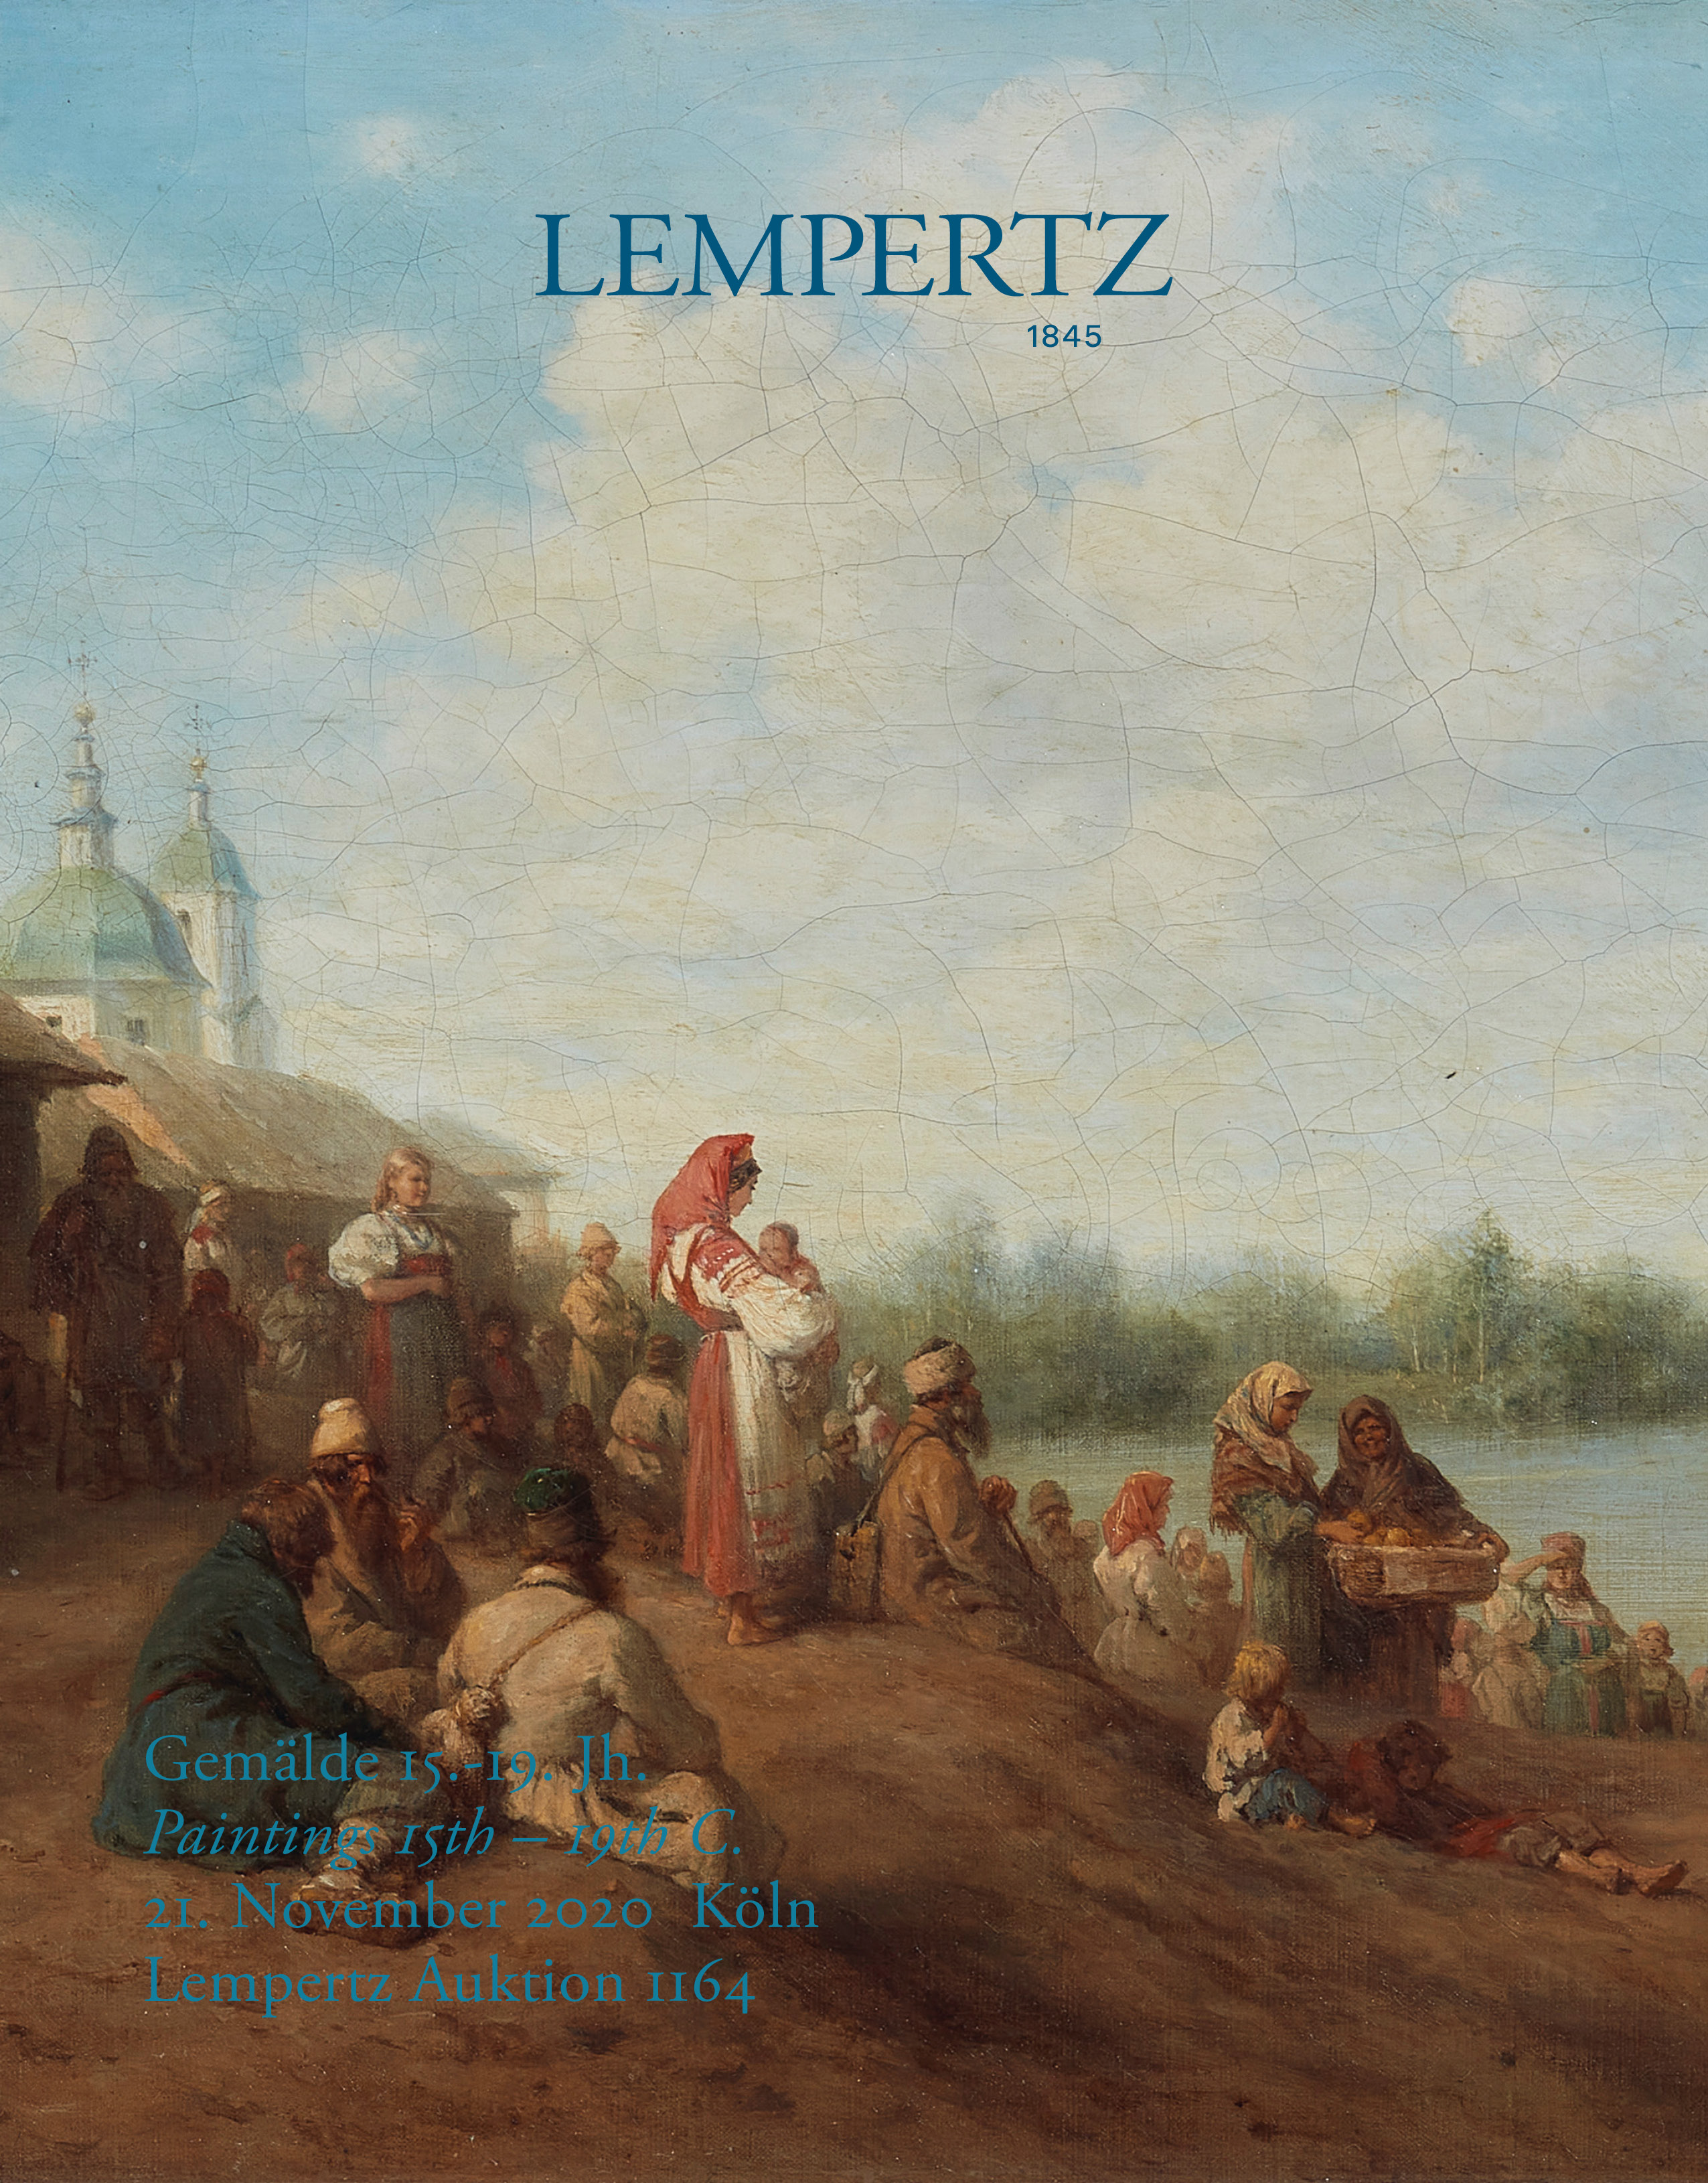 Catalogue - Paintings 15th to 19th Century - Online Catalogue - Auction 1164 – Purchase valuable works of art at the next Lempertz-Auction!